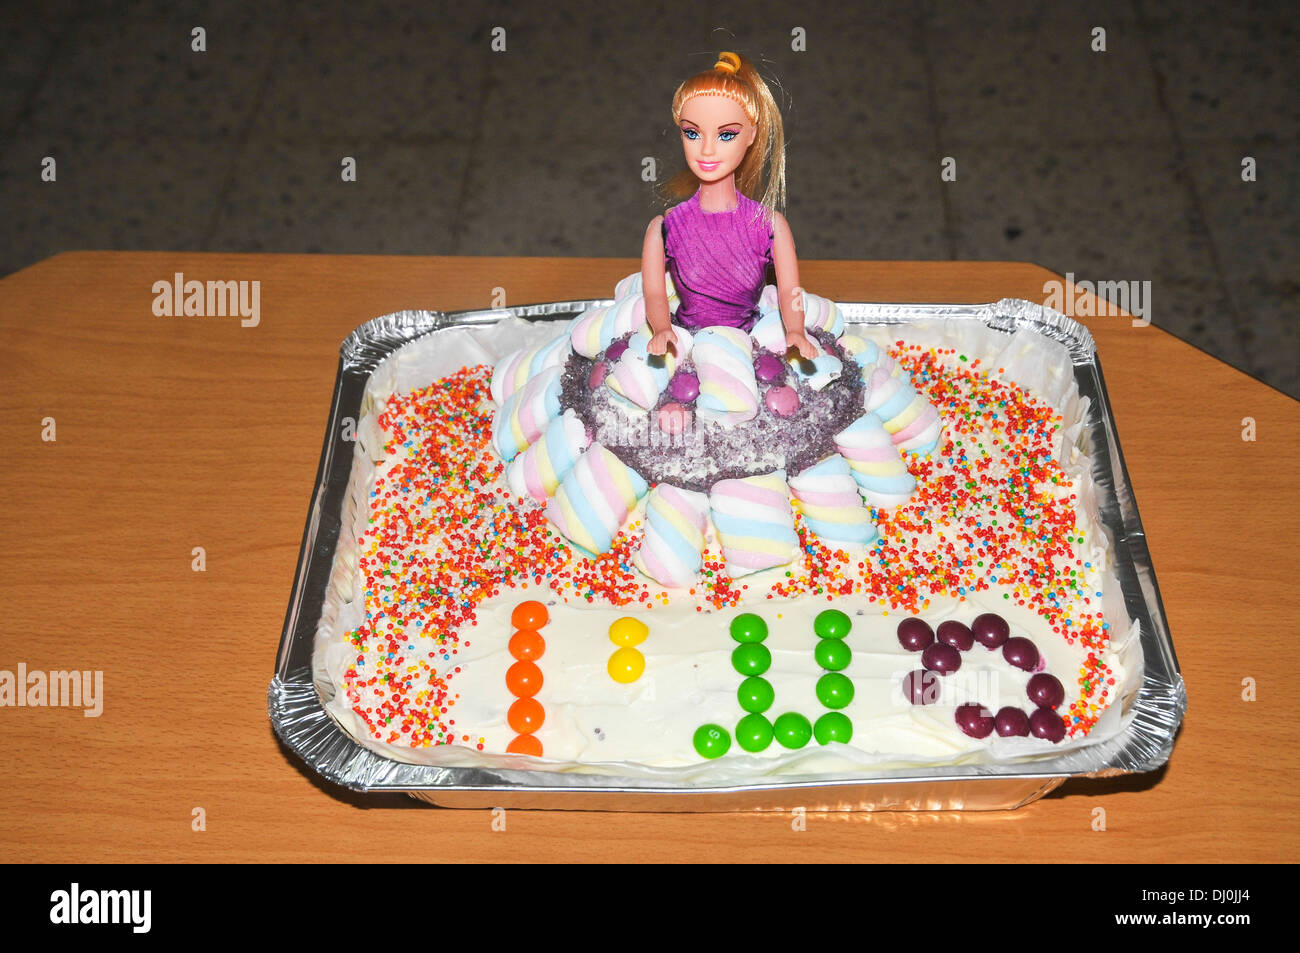 Remarkable Barbie Doll Birthday Cake Decorated With Smarties And Hundreds And Birthday Cards Printable Opercafe Filternl